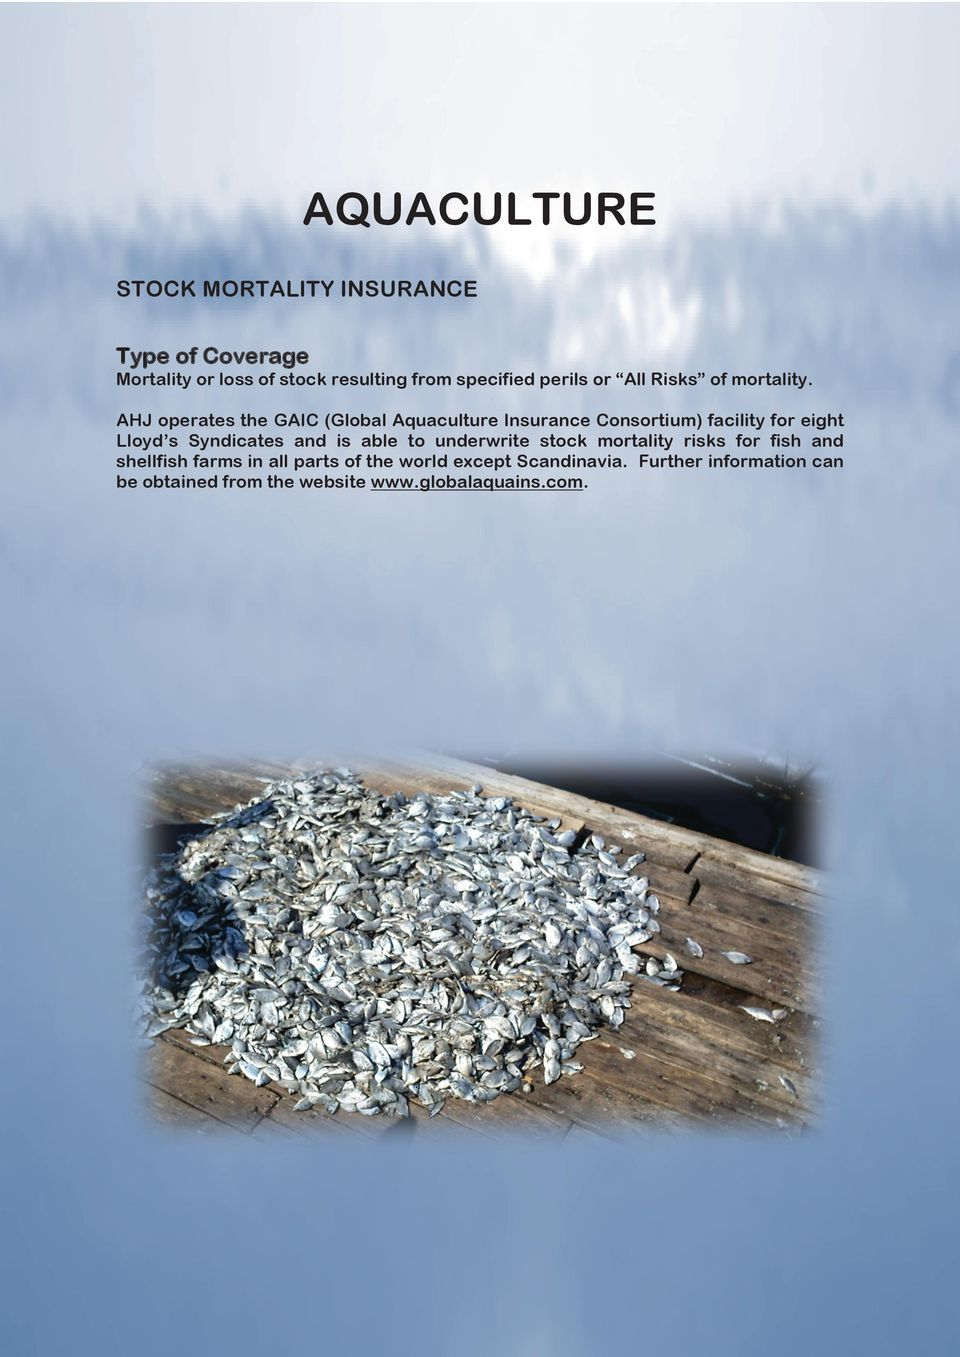 AHJ operates the GAIC (Global Aquaculture Insurance Consortium) facility for eight Lloyd s Syndicates and